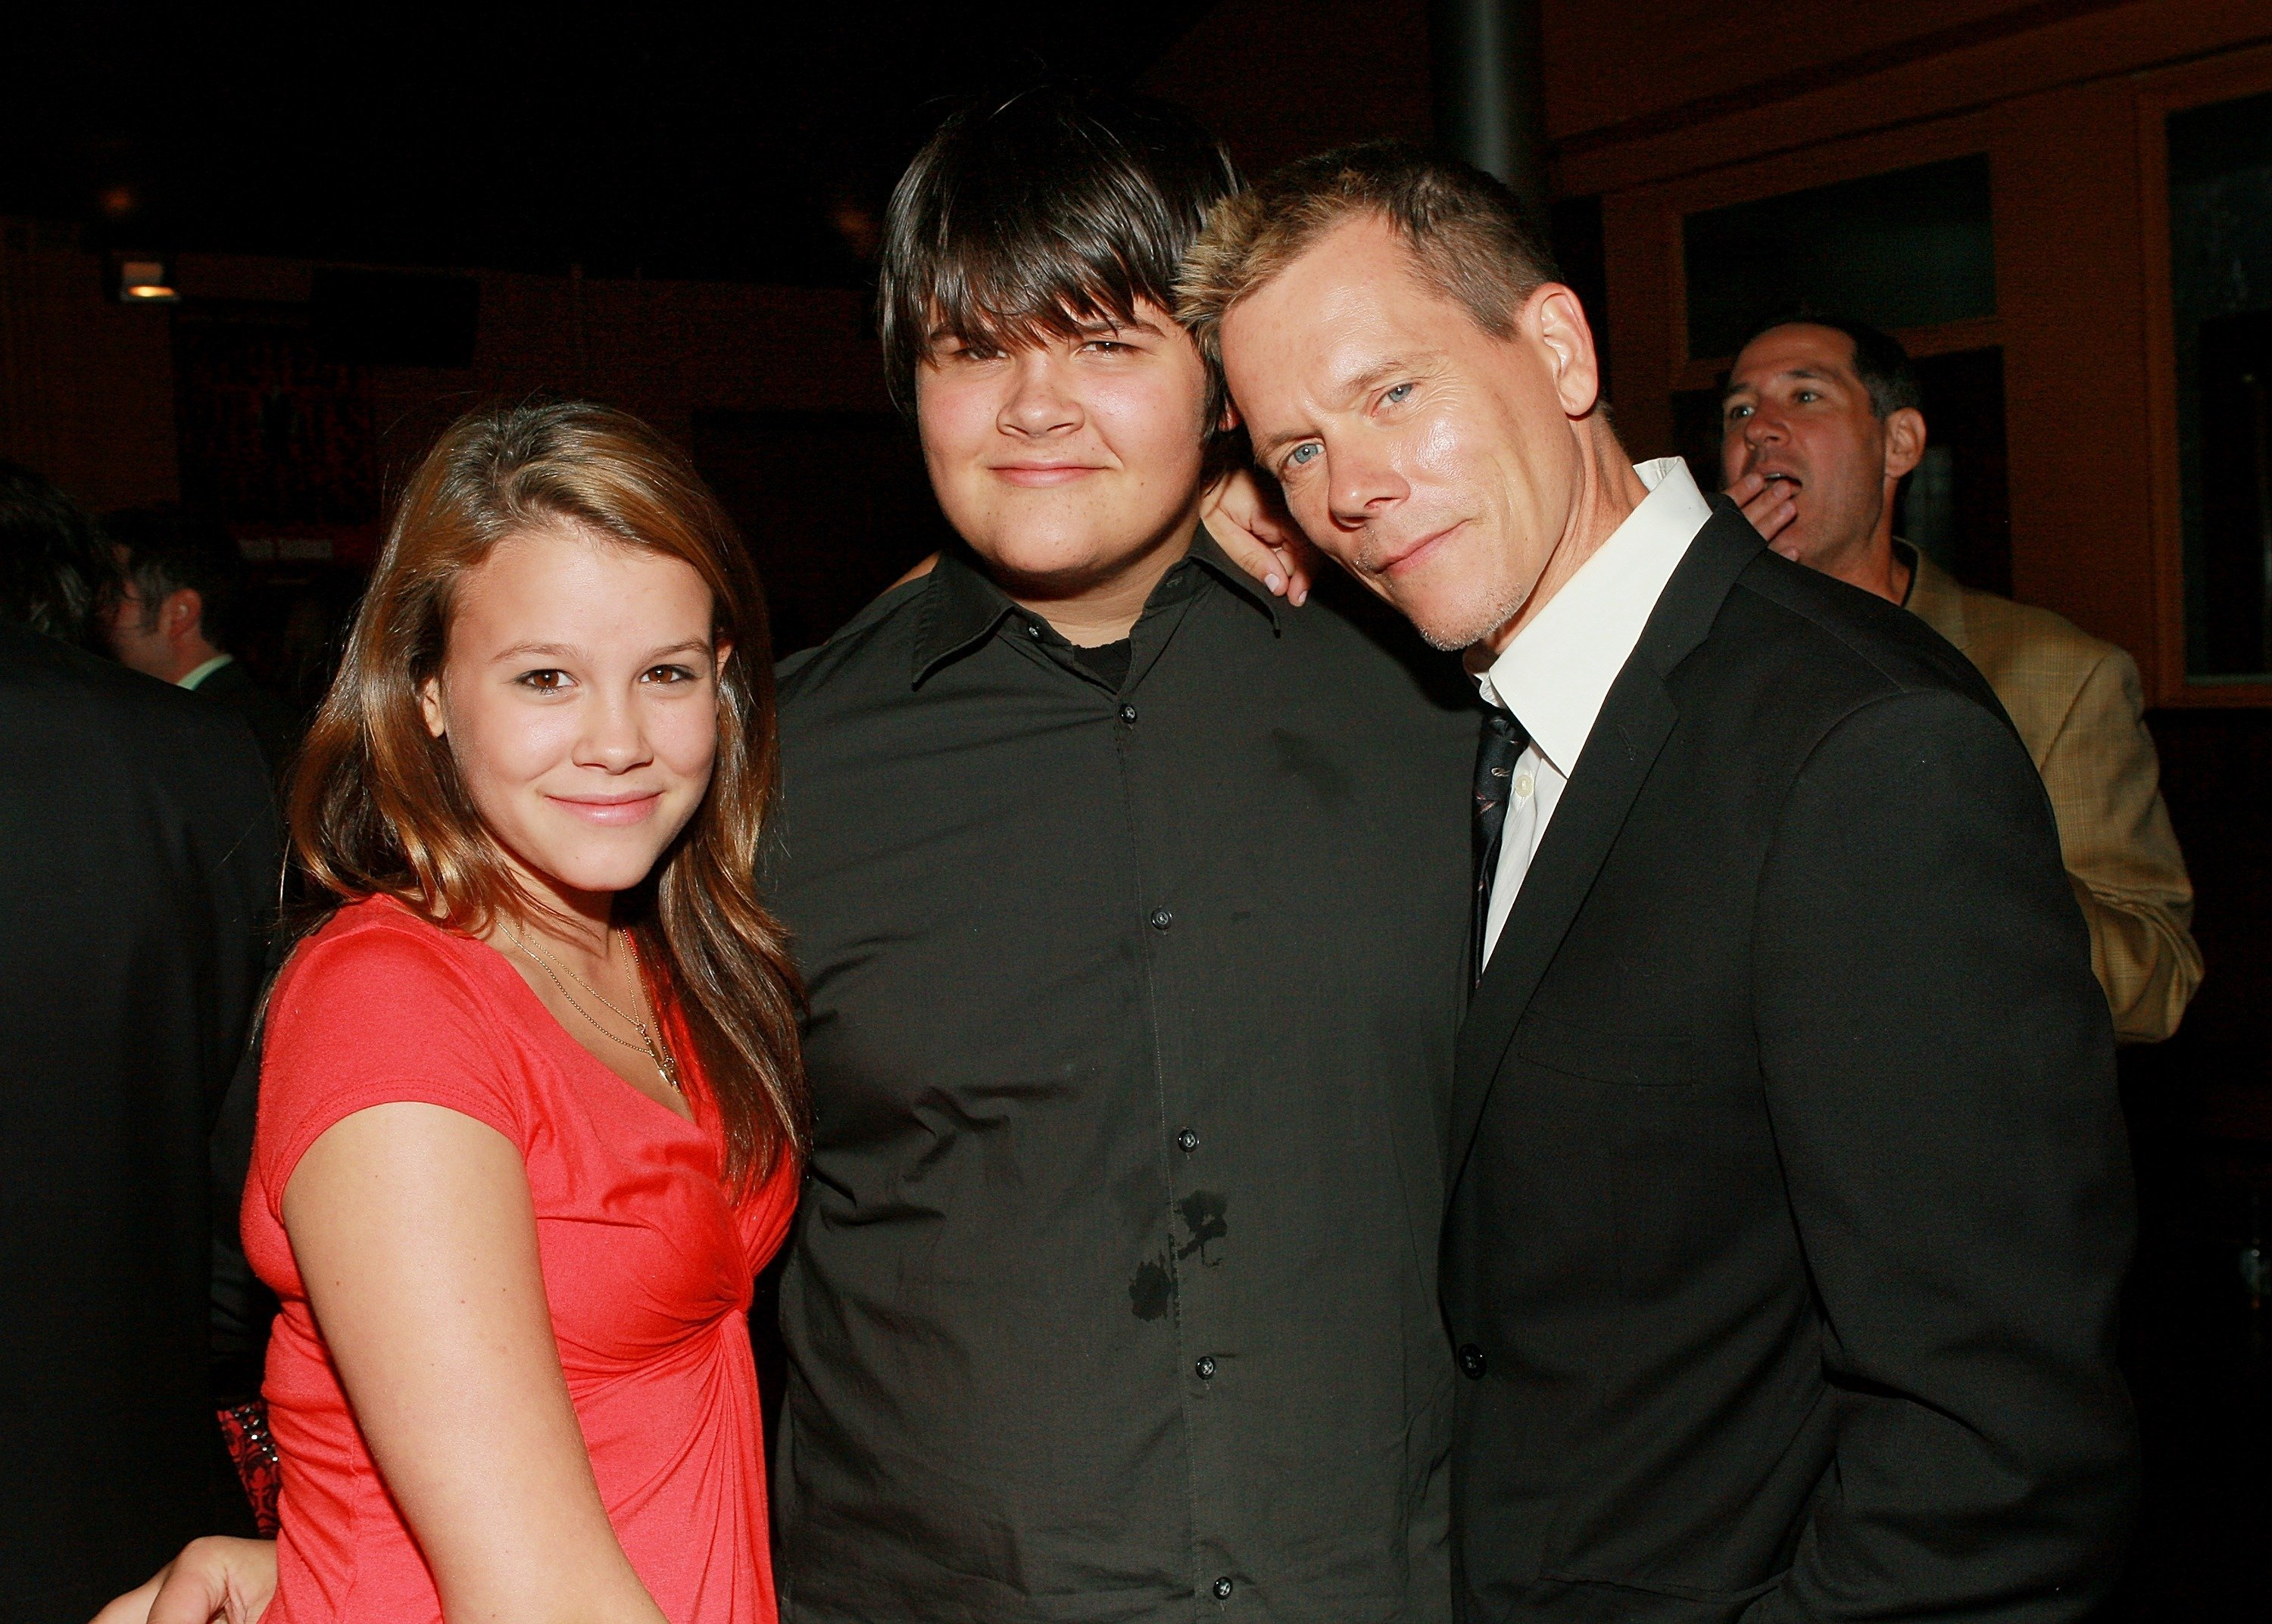 """Sosie Bacon, Travis Bacon, and father Kevin Bacon attend the after party for the """"Death Sentence"""" premiere in New York City on August 28, 2007 